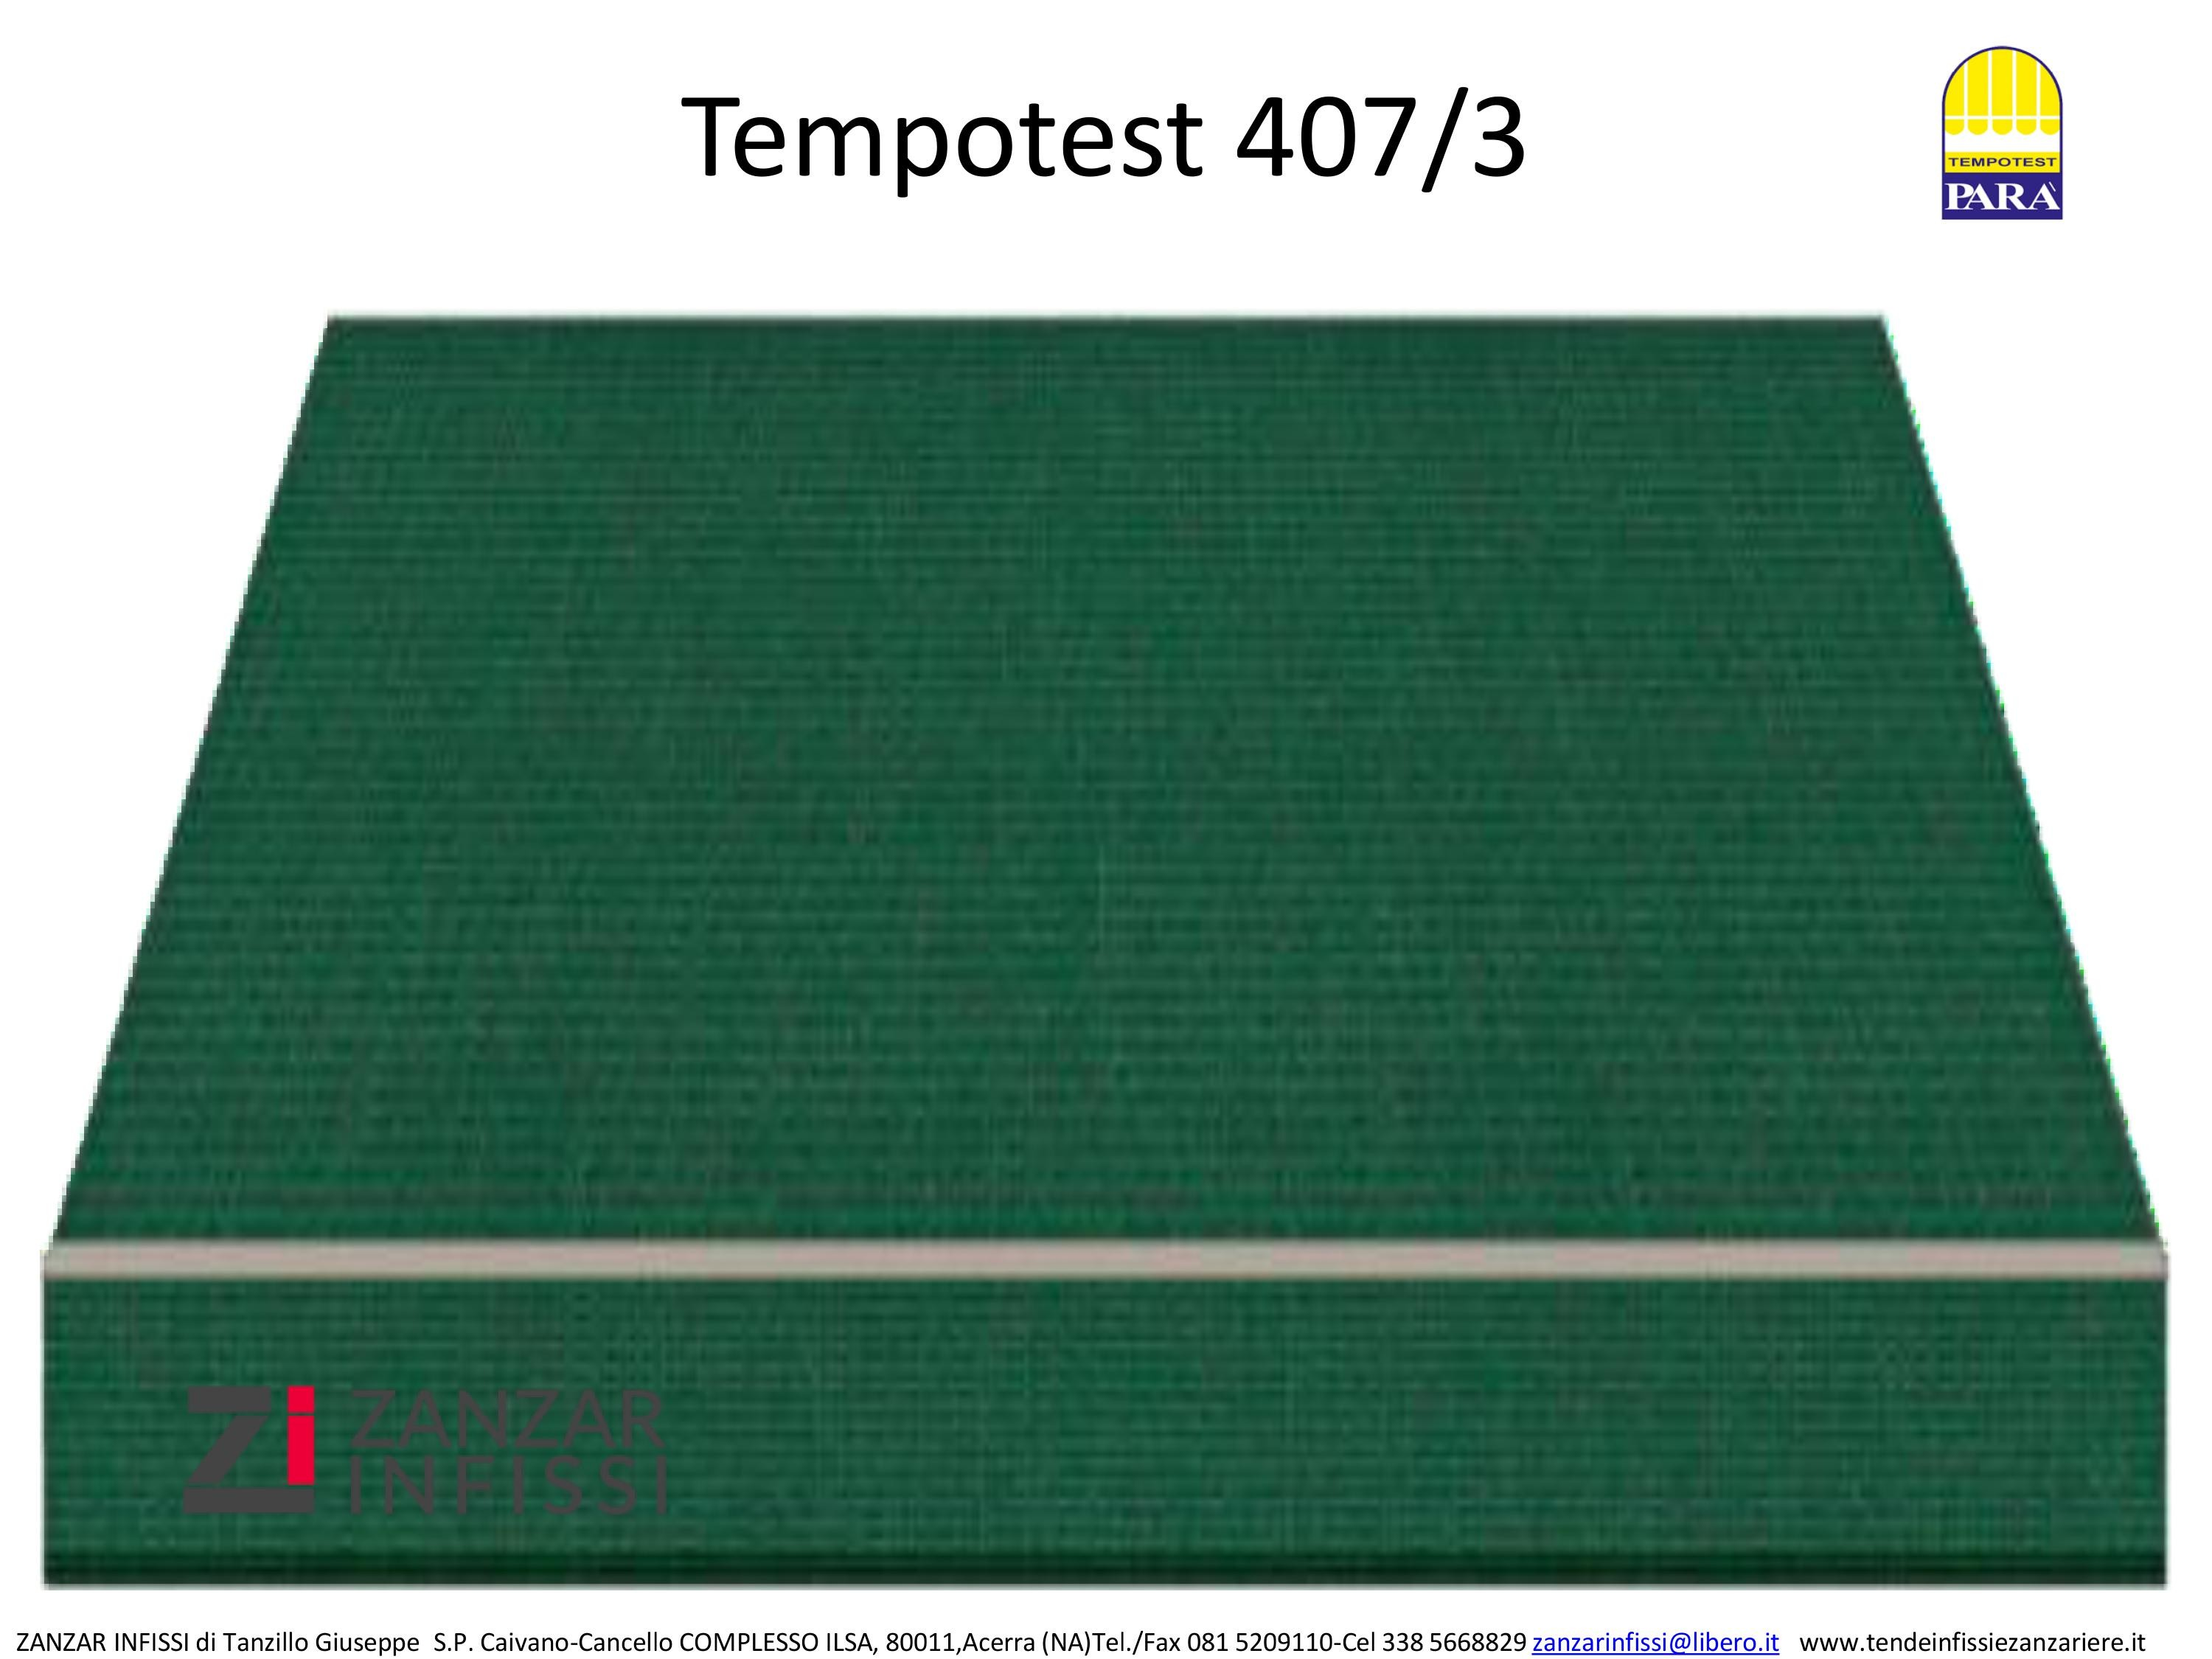 Tempotest 407/3